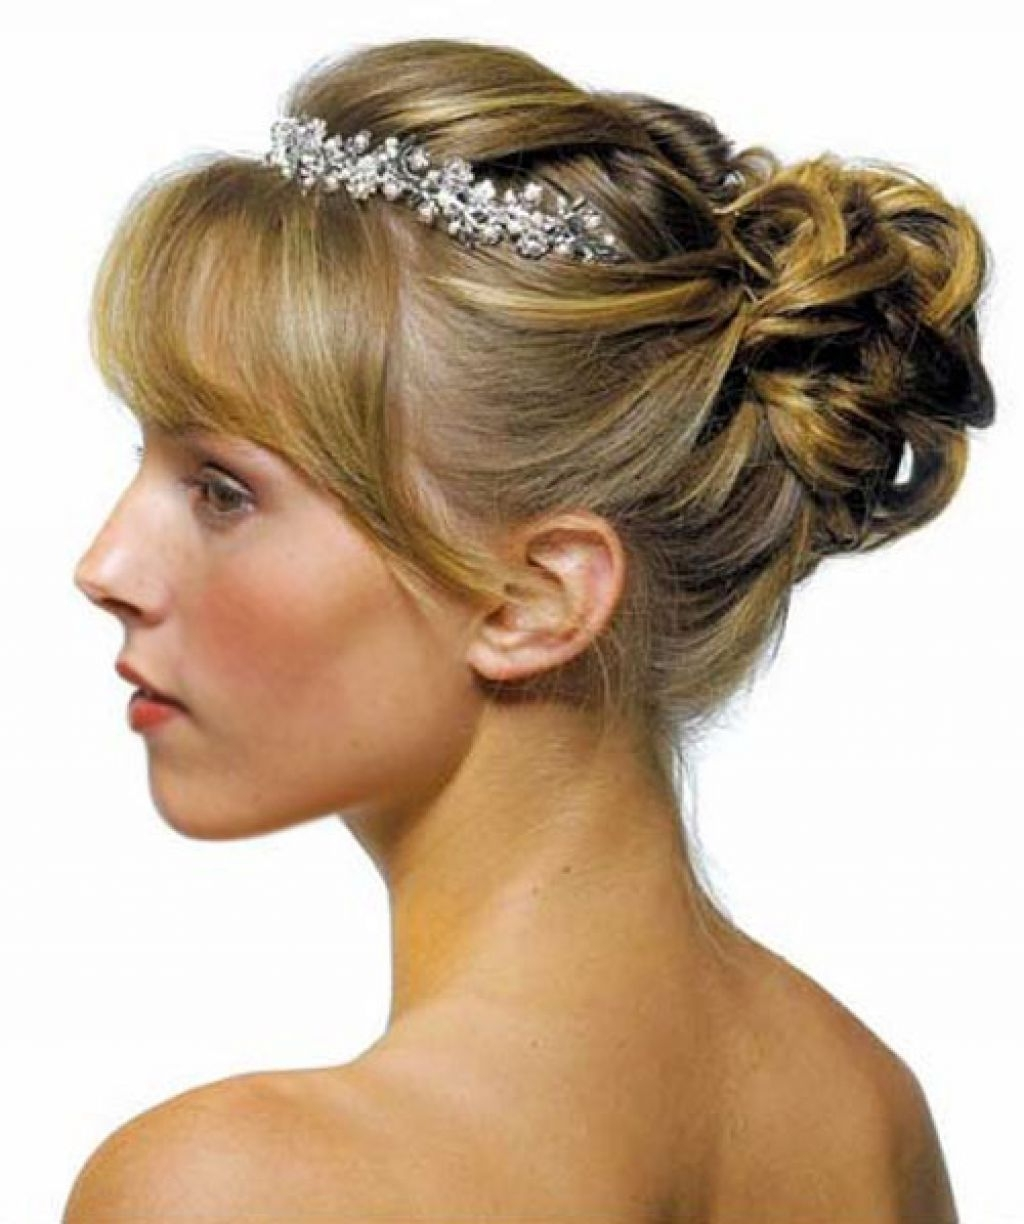 Wedding Hairstyles Ideas: Side Ponytail Curly Low Updo Fancy Wedding Within Famous Off To The Side Wedding Hairstyles (View 6 of 15)